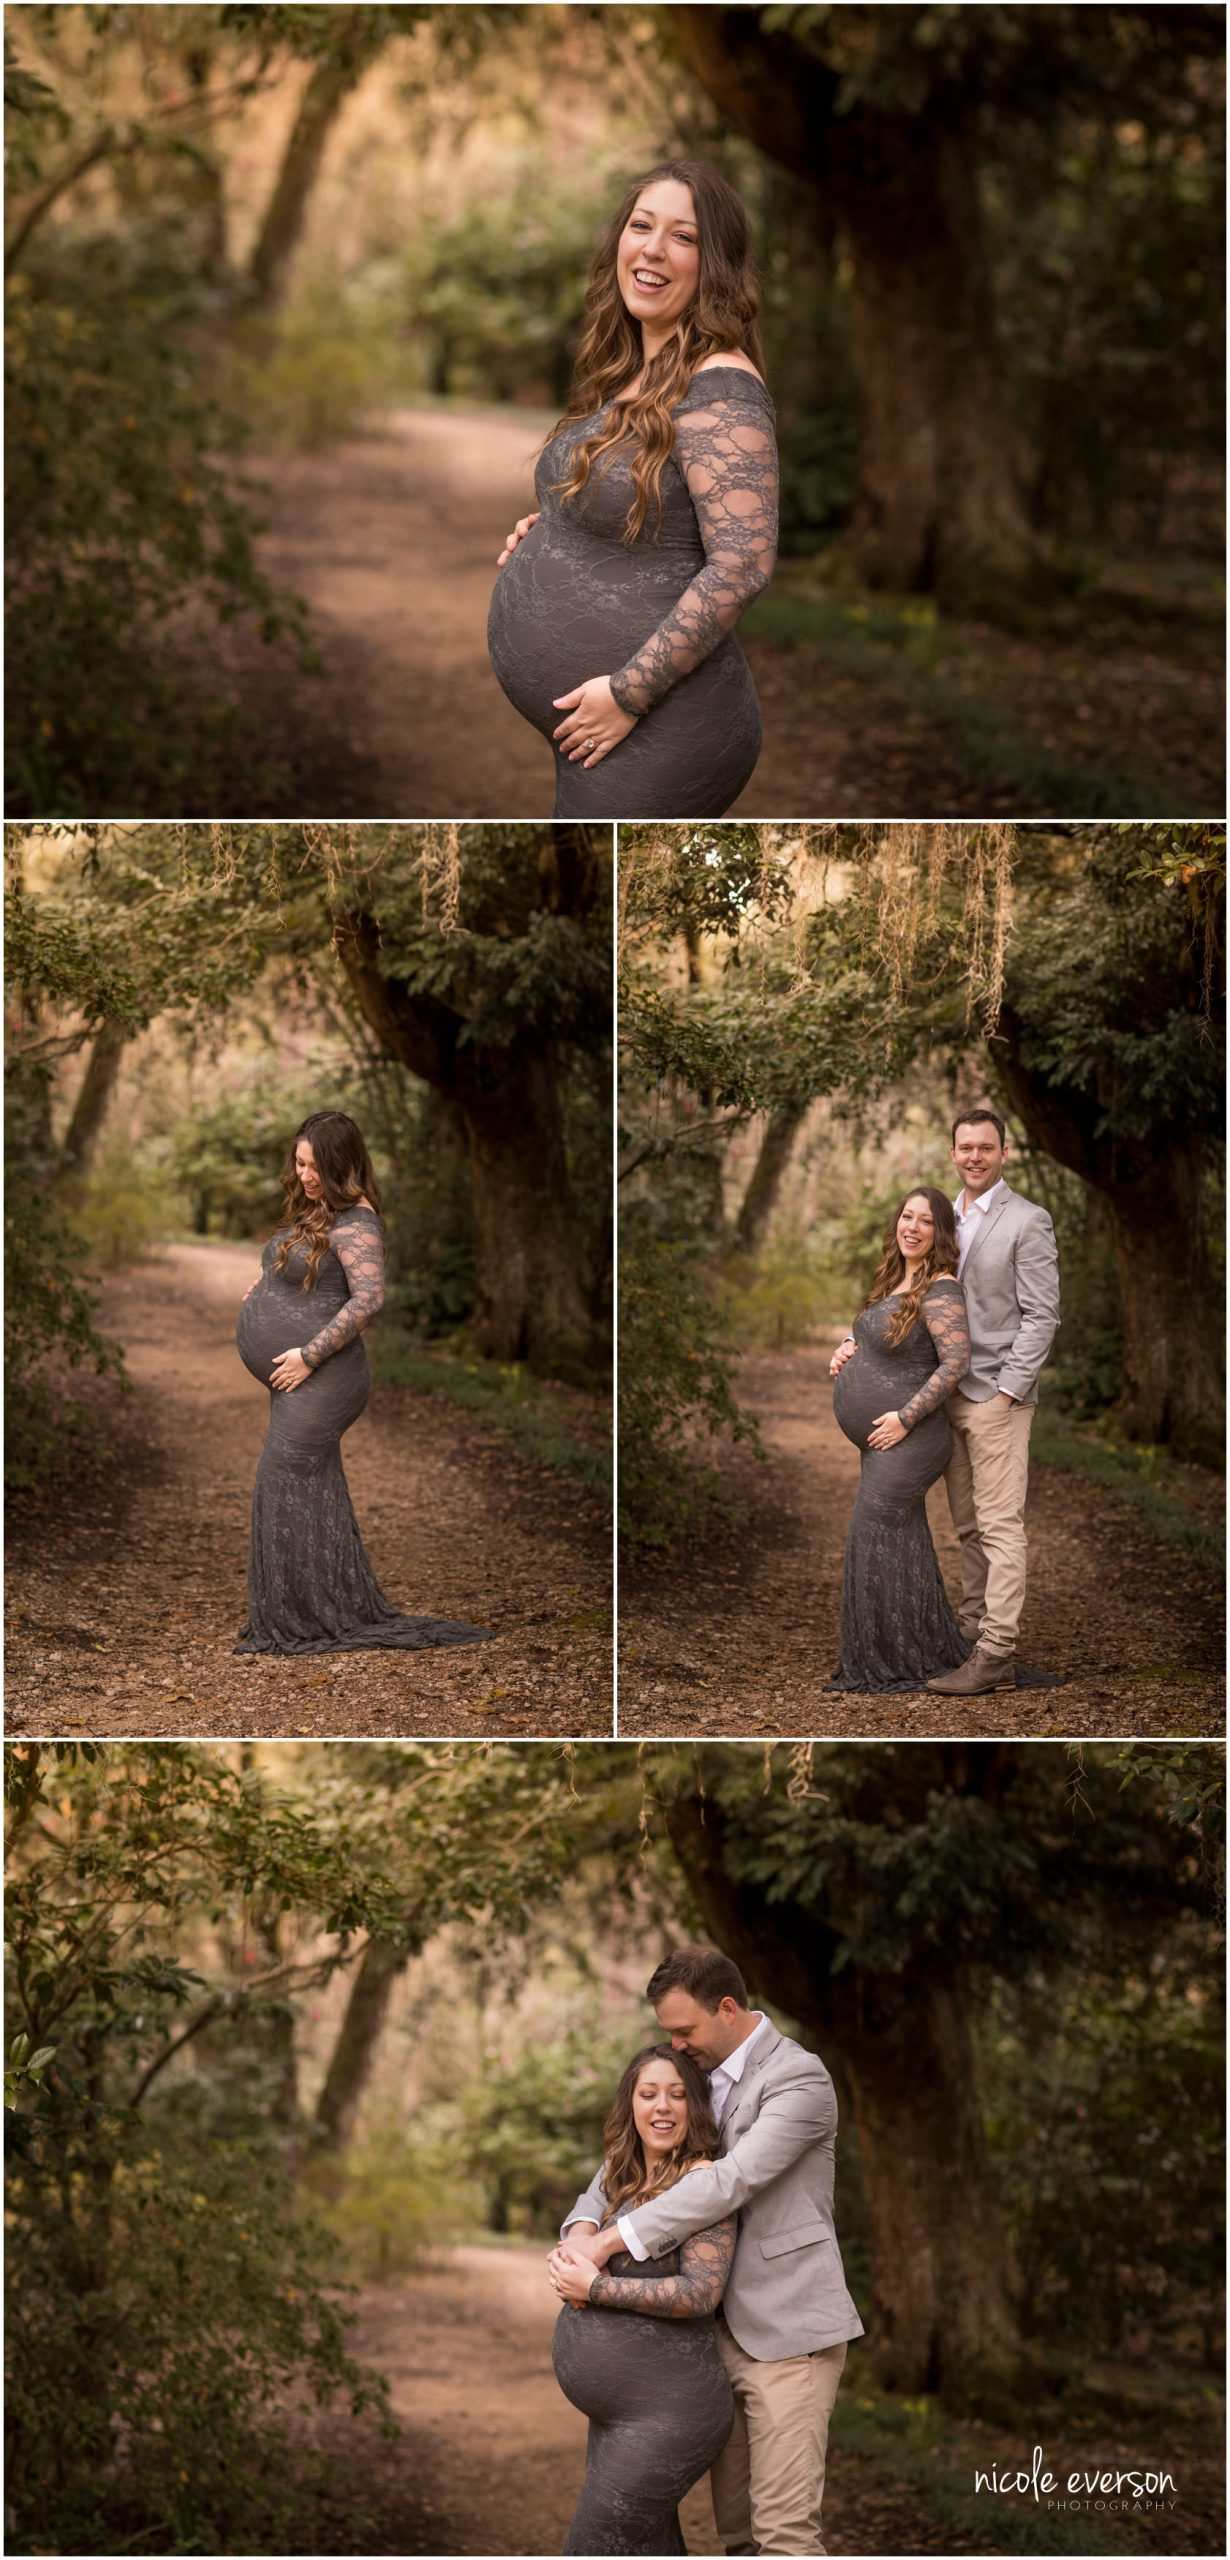 maternity photography at McClay gardens in Tallahassee FL by Nicole Everson Photography